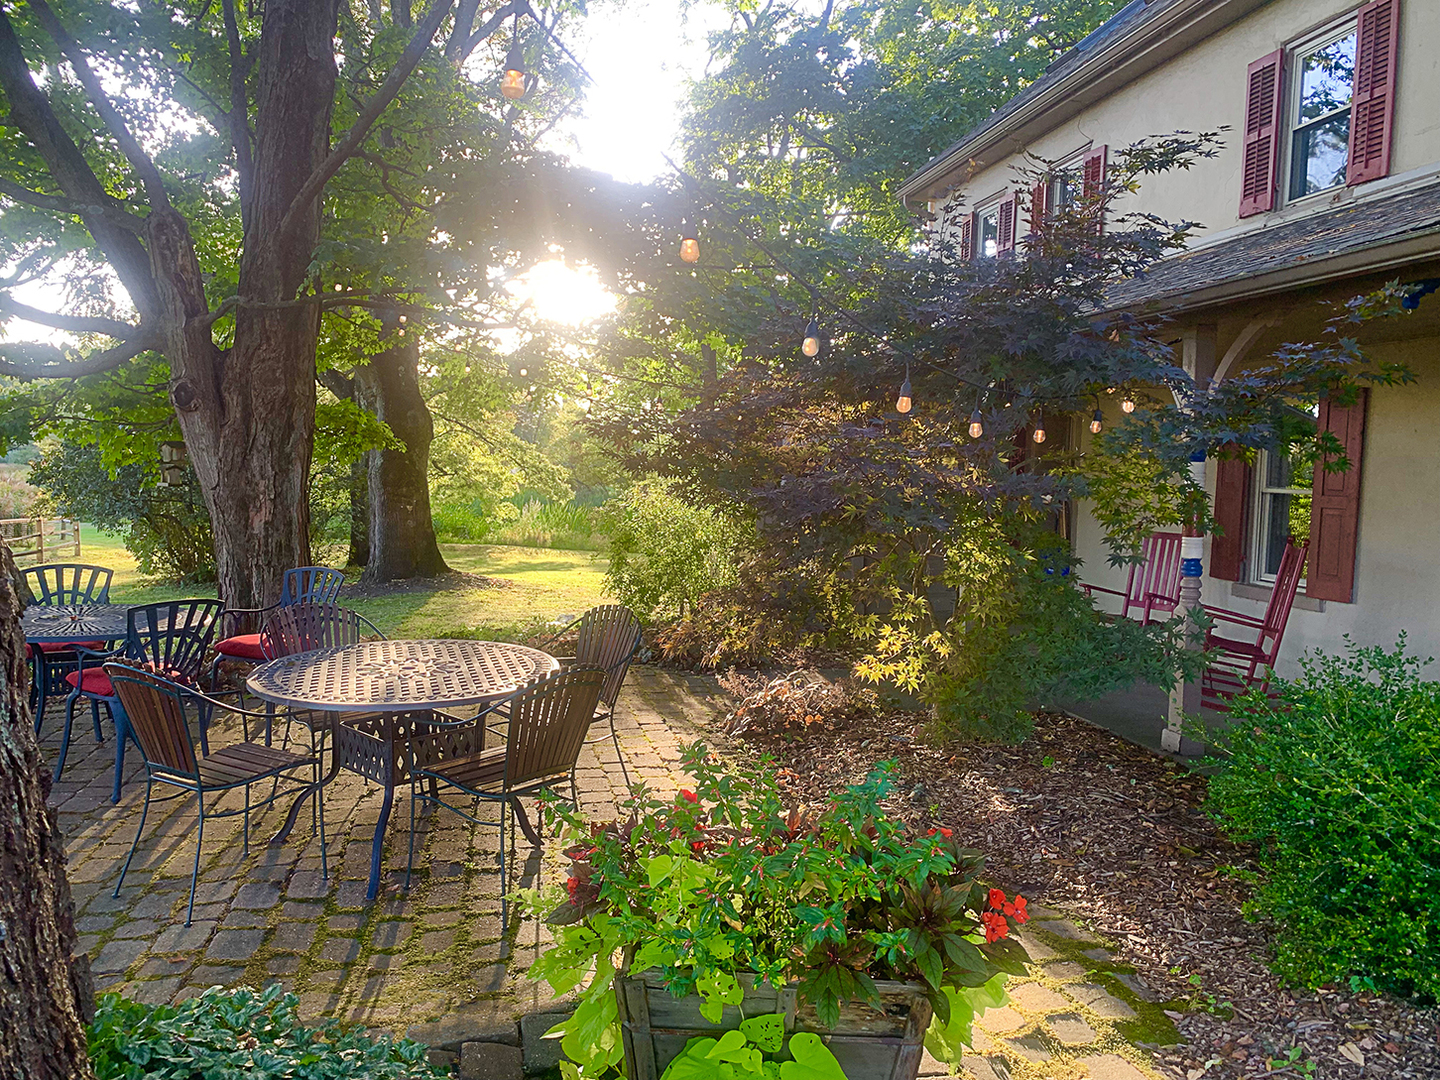 Bedminster Township Bed and Breakfast